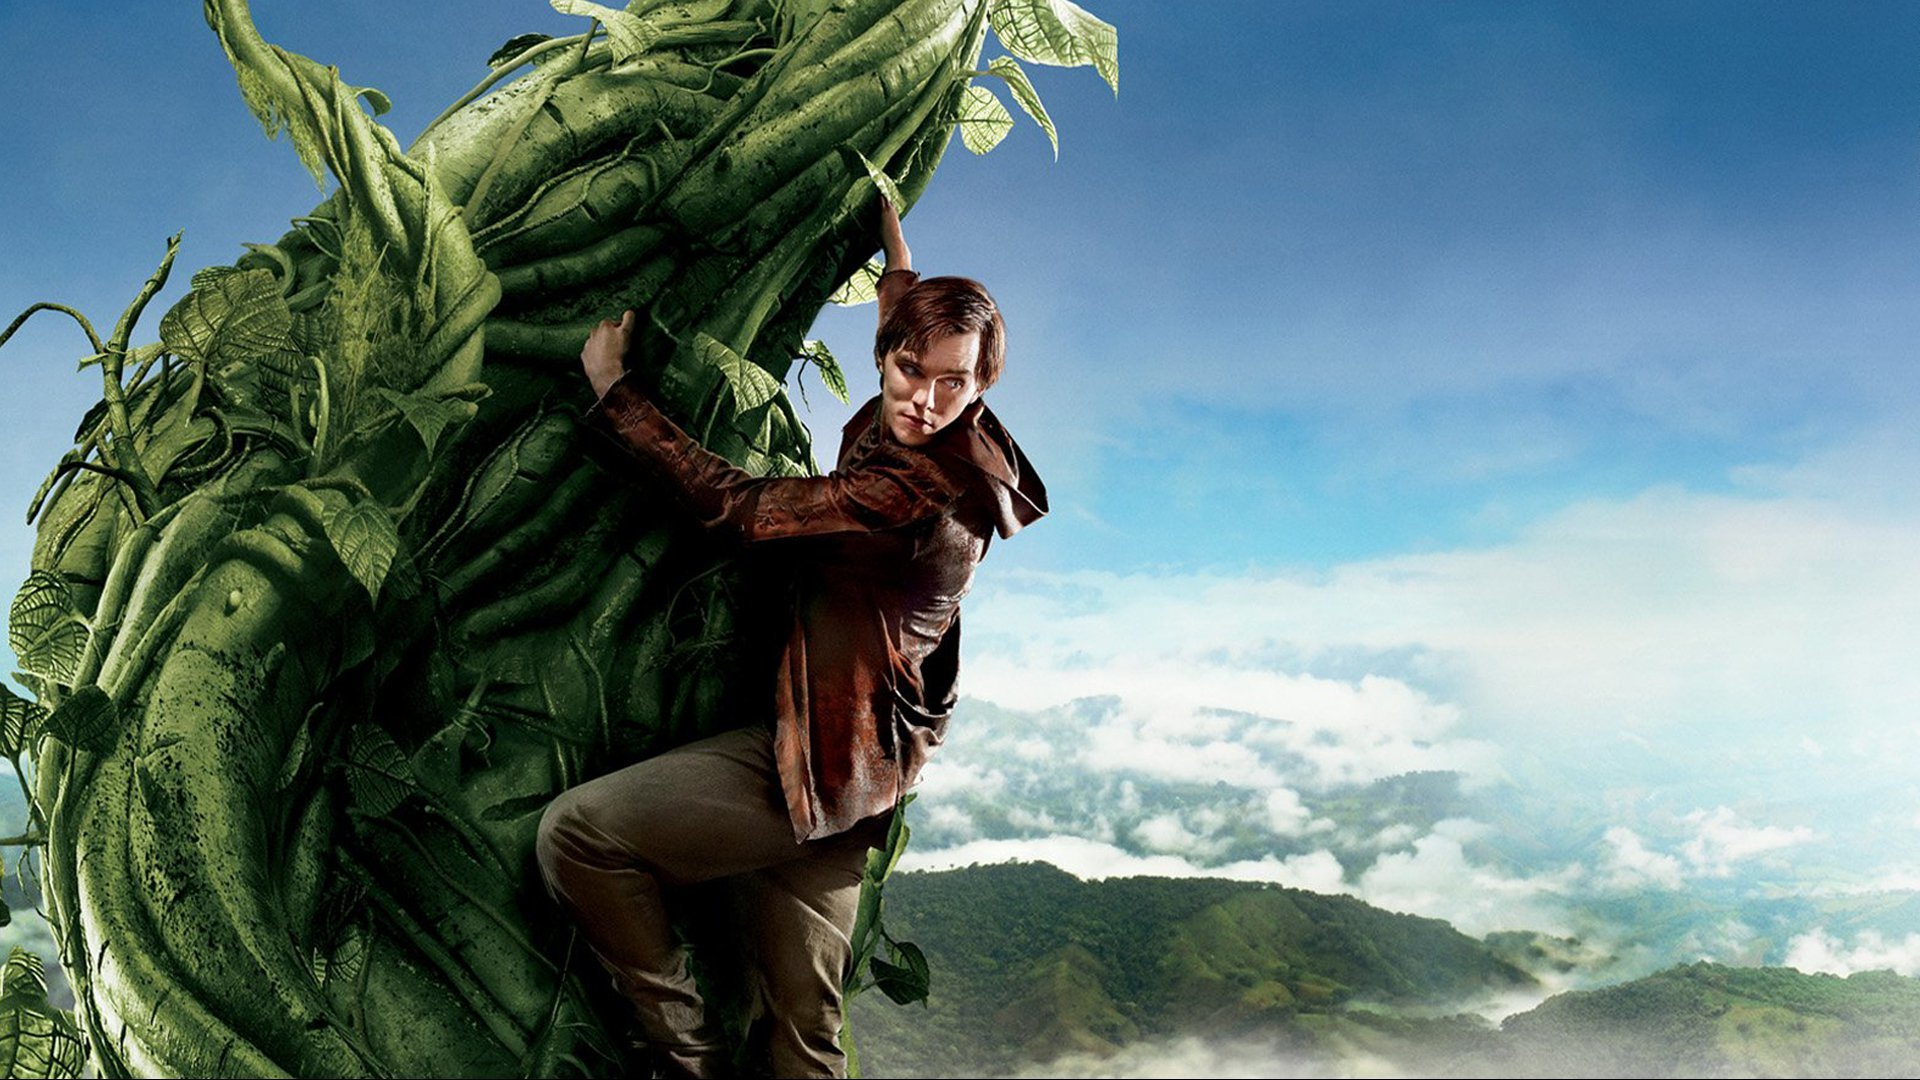 Download hd 1920x1080 Jack The Giant Slayer PC wallpaper ID:27880 for free